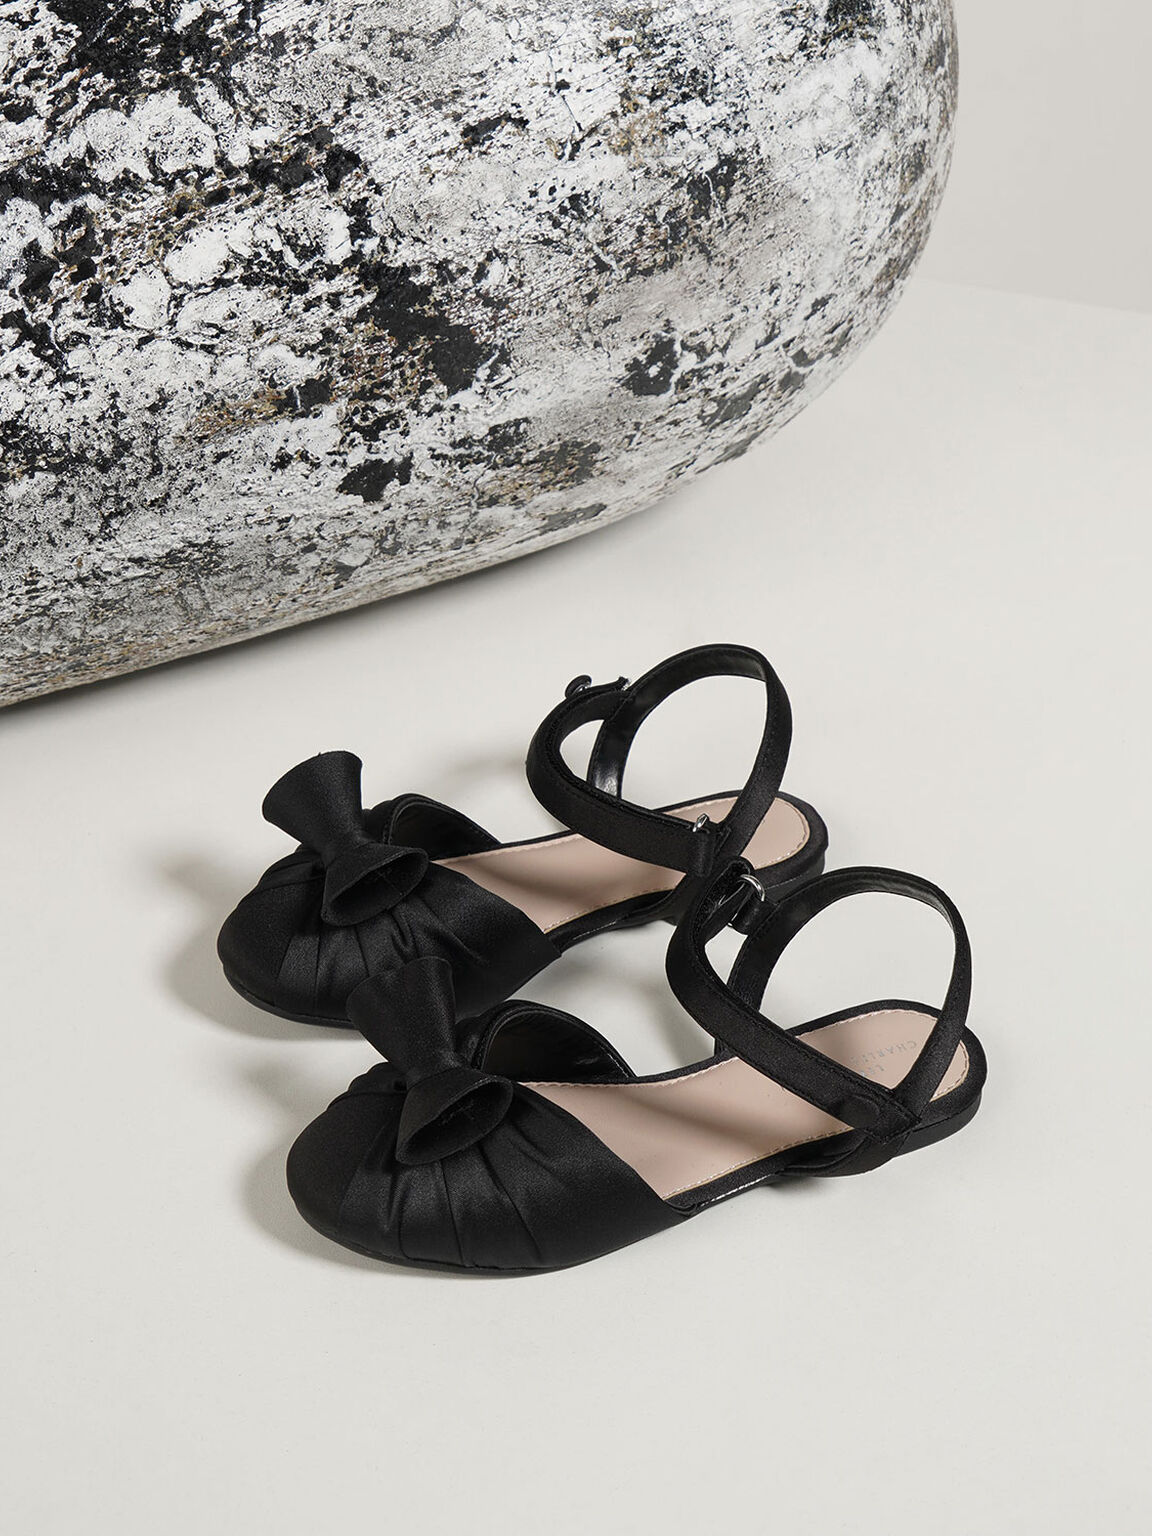 Girls' Satin Flats, Black, hi-res